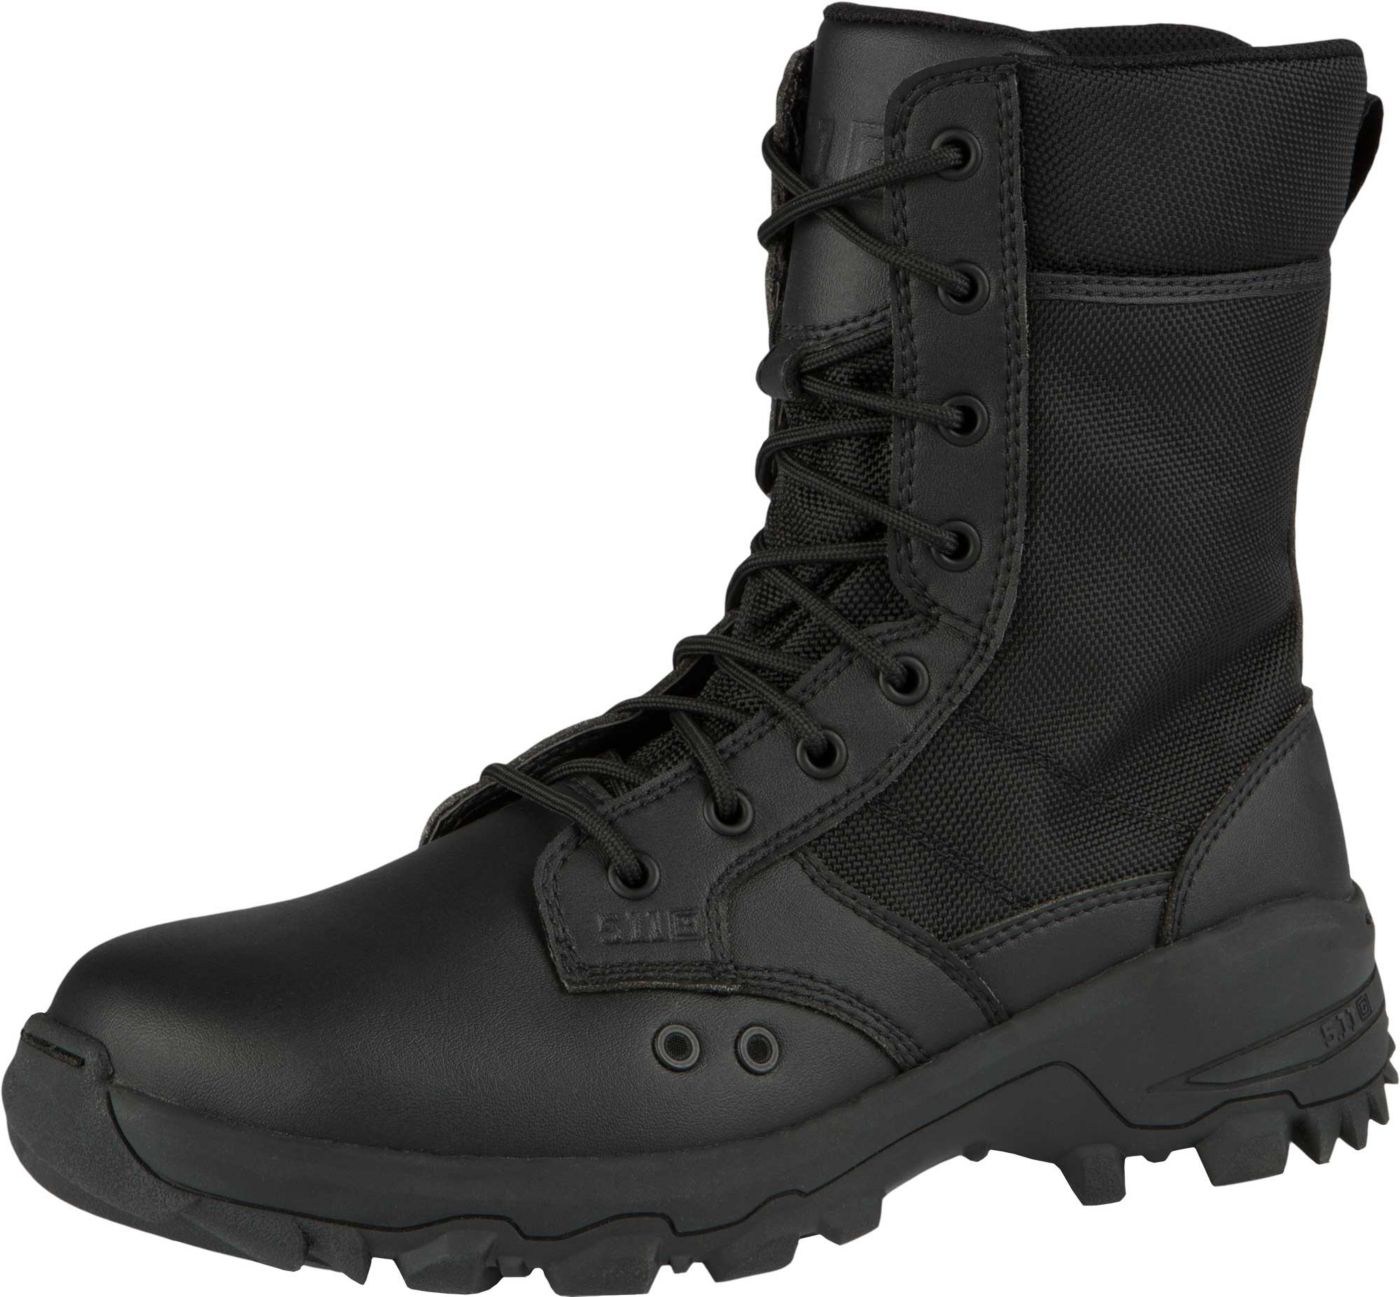 5.11 Tactical Men's Speed 3.0 RapidDry Tactical Boots